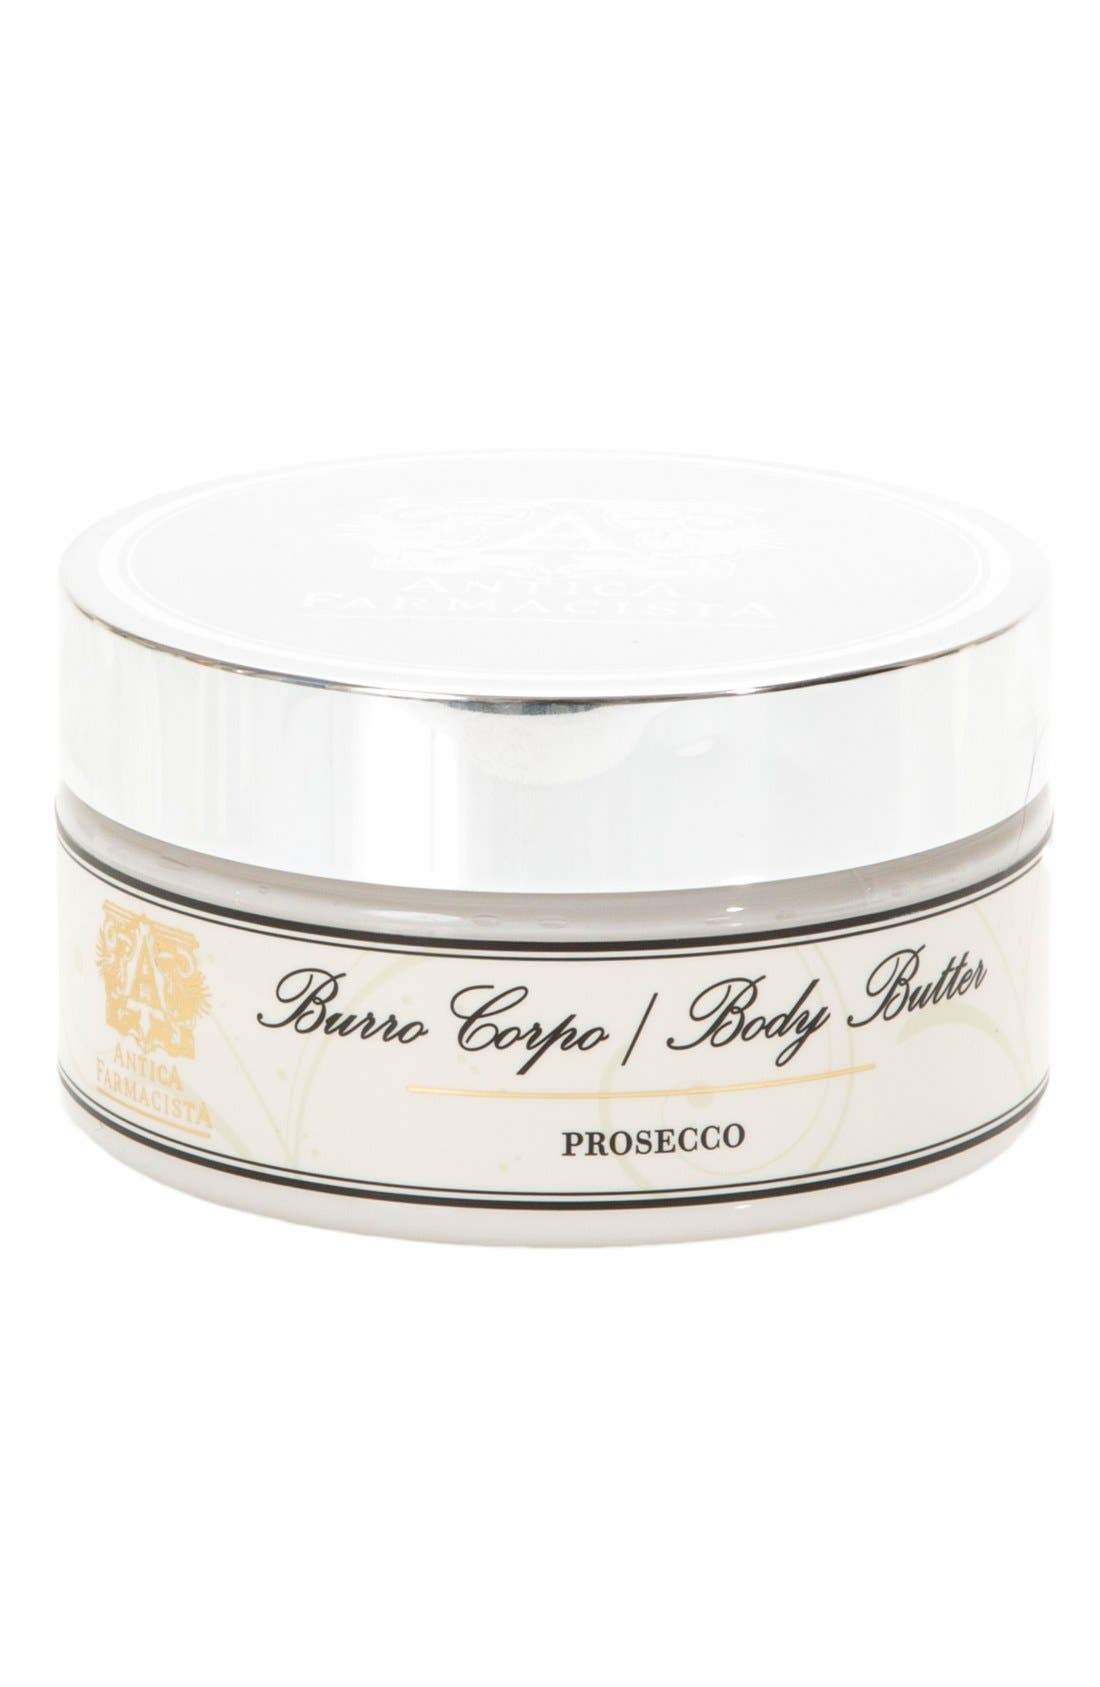 ANTICA FARMACISTA,                             'Prosecco' Body Butter,                             Main thumbnail 1, color,                             000